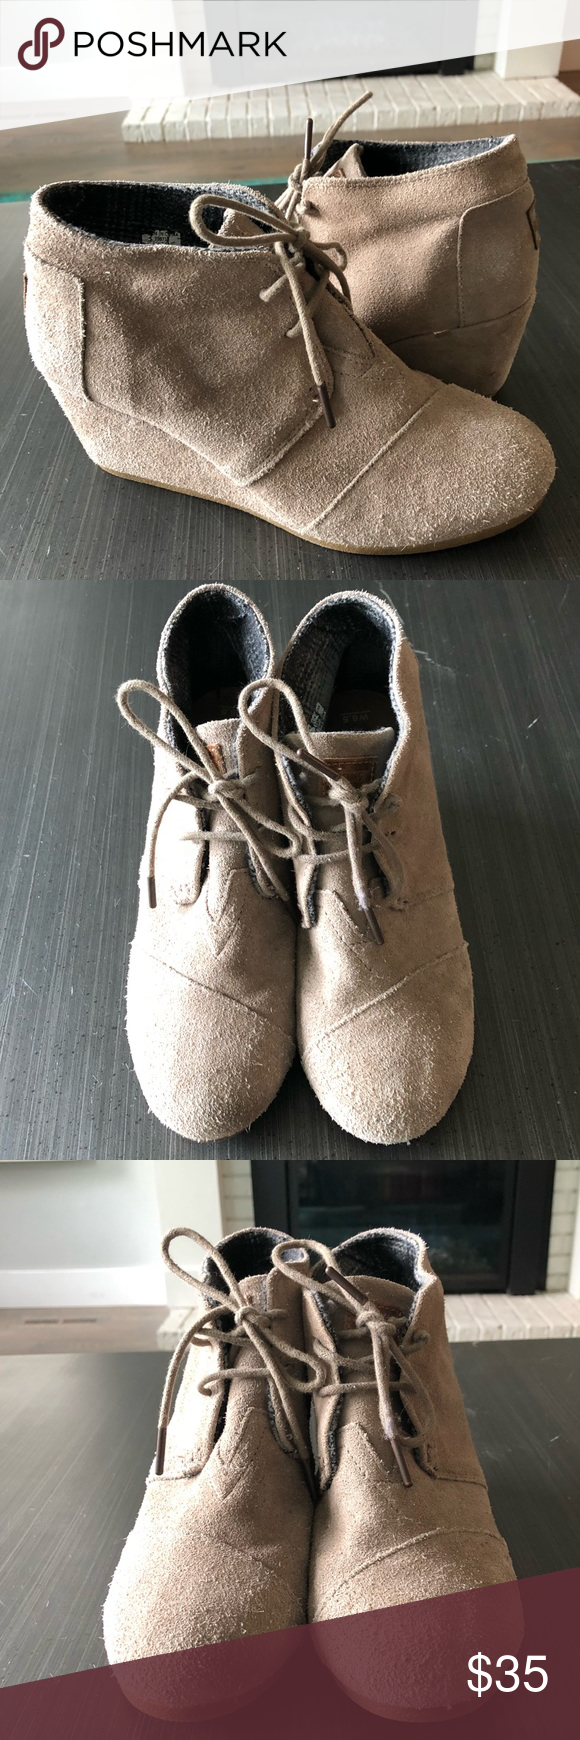 32c22016518 Toms Wedge Booties Worn a handful of times. Great condition. Taupe. The  lovely TOMS® Kala wedge bootie easily complements your jeans and leggings.